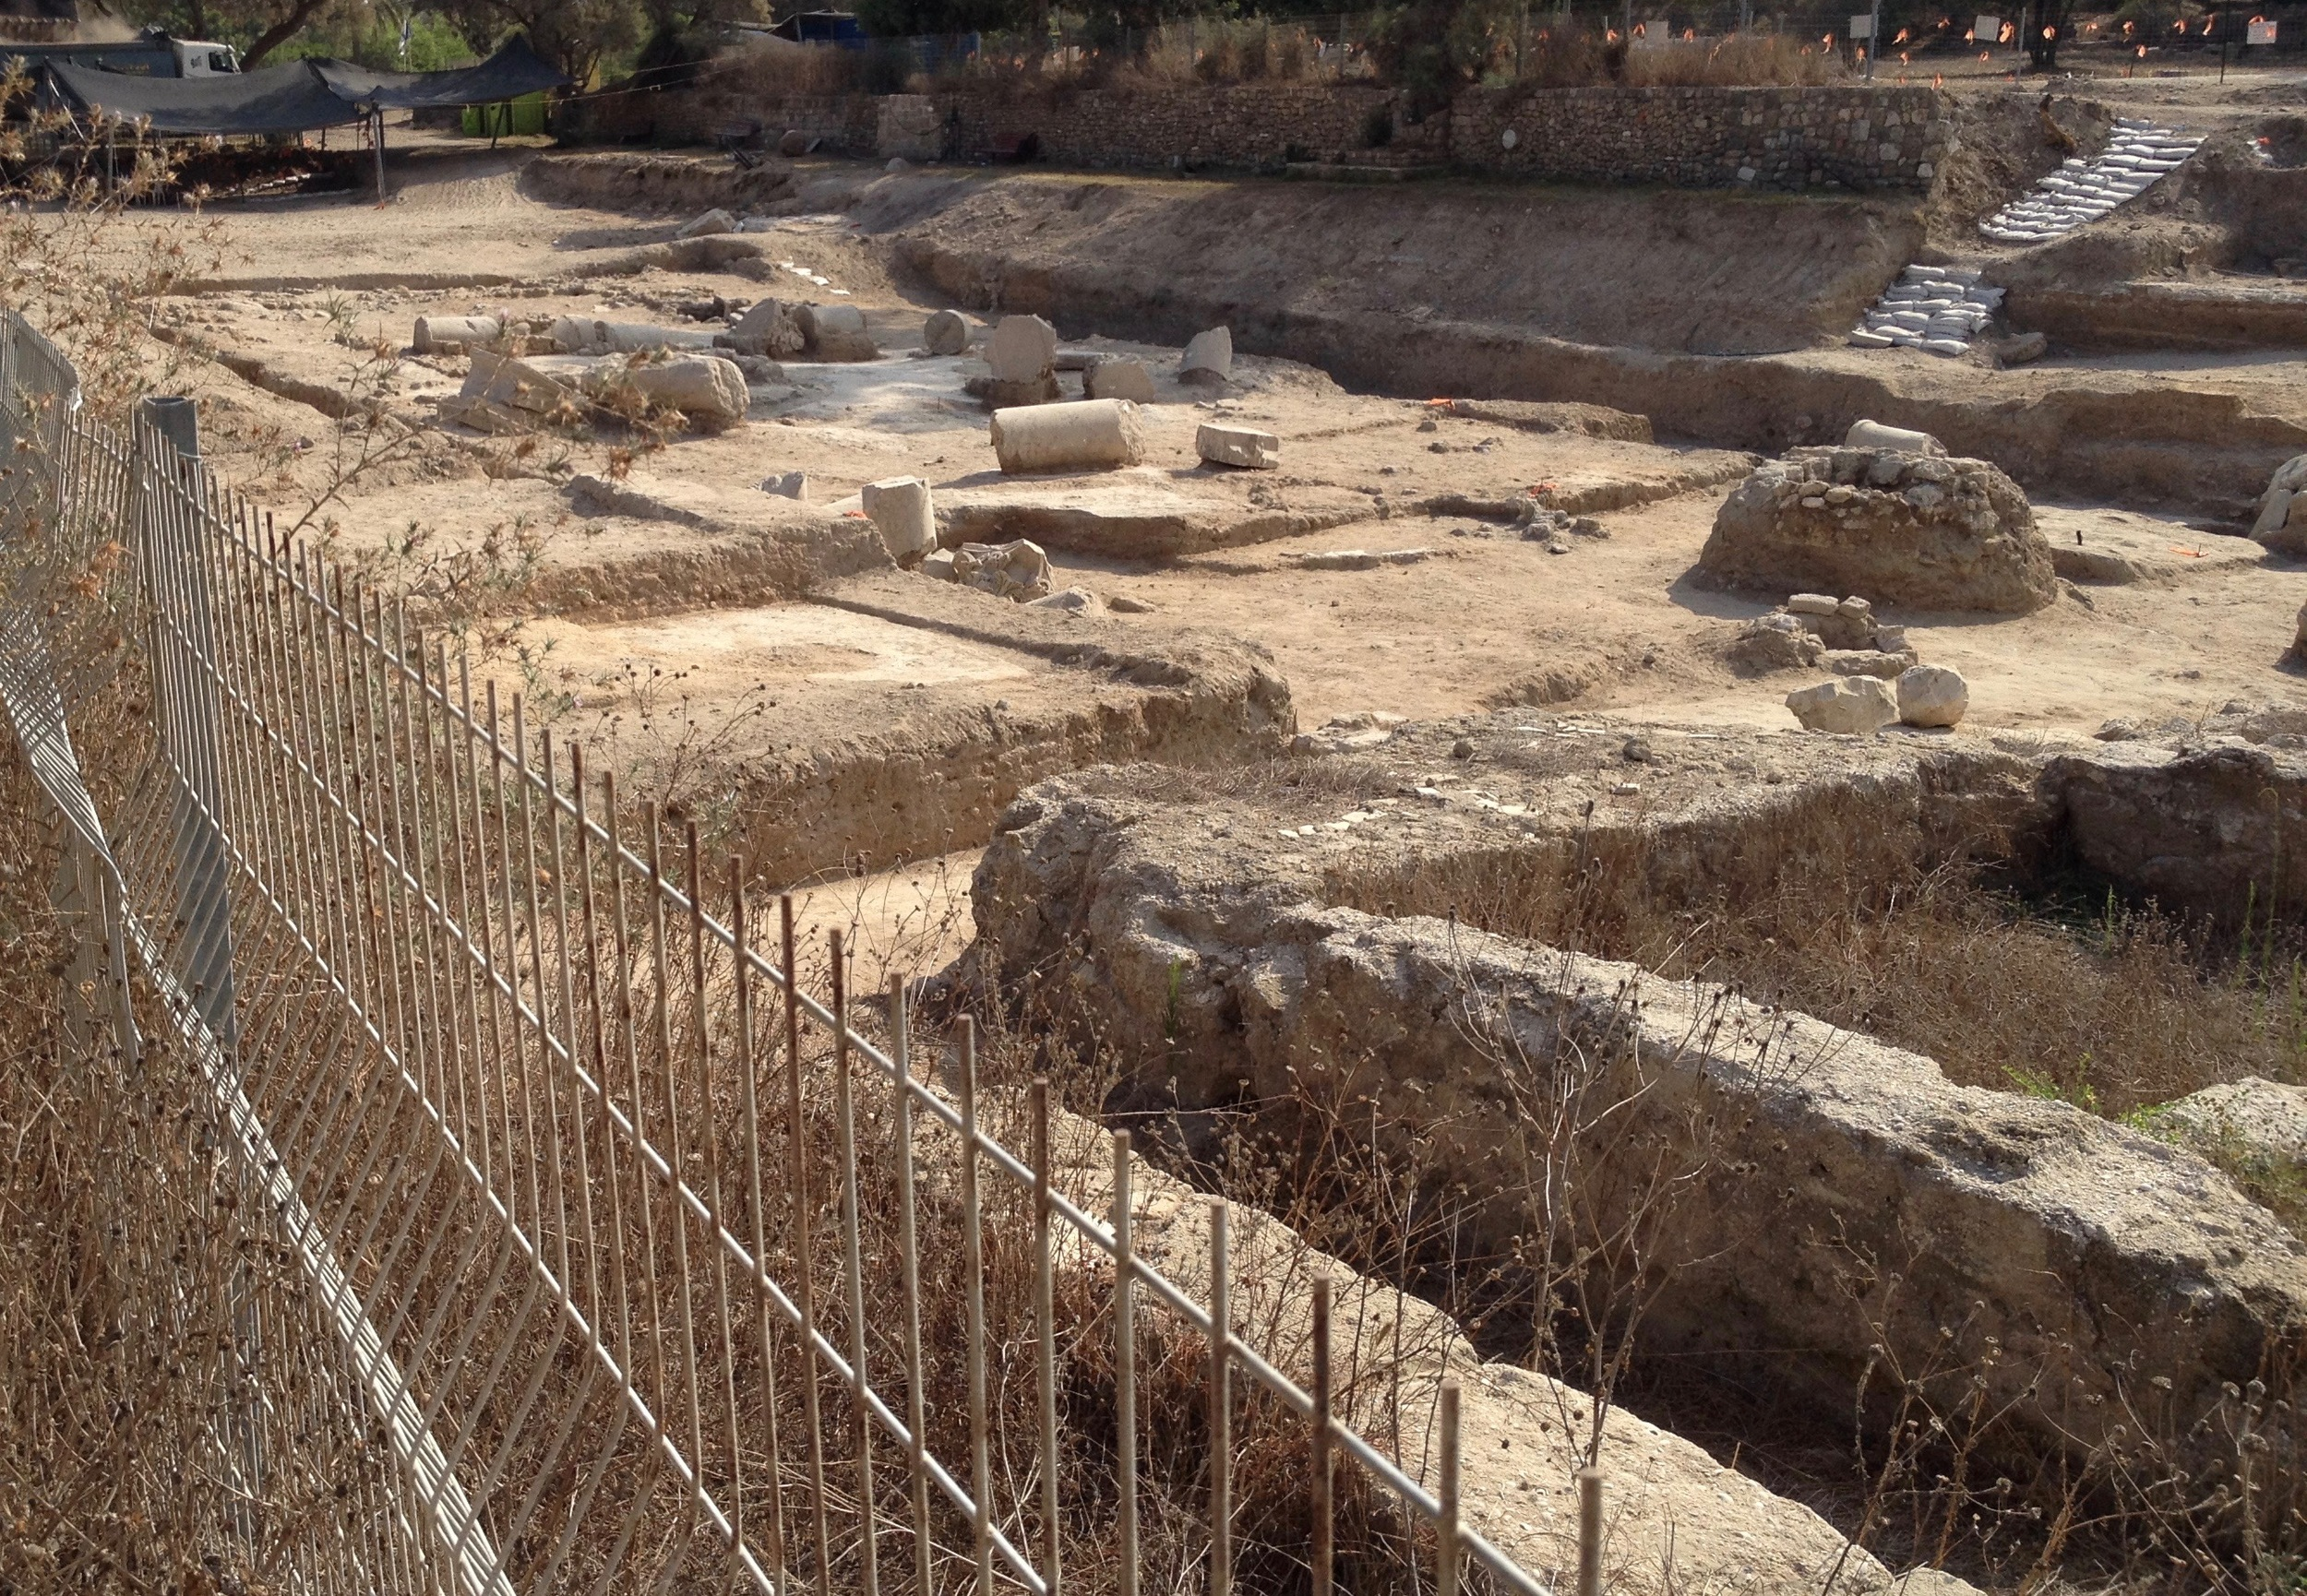 Grid 47 -- 2016 IAA excavation preparing for restoration of bouleuterion